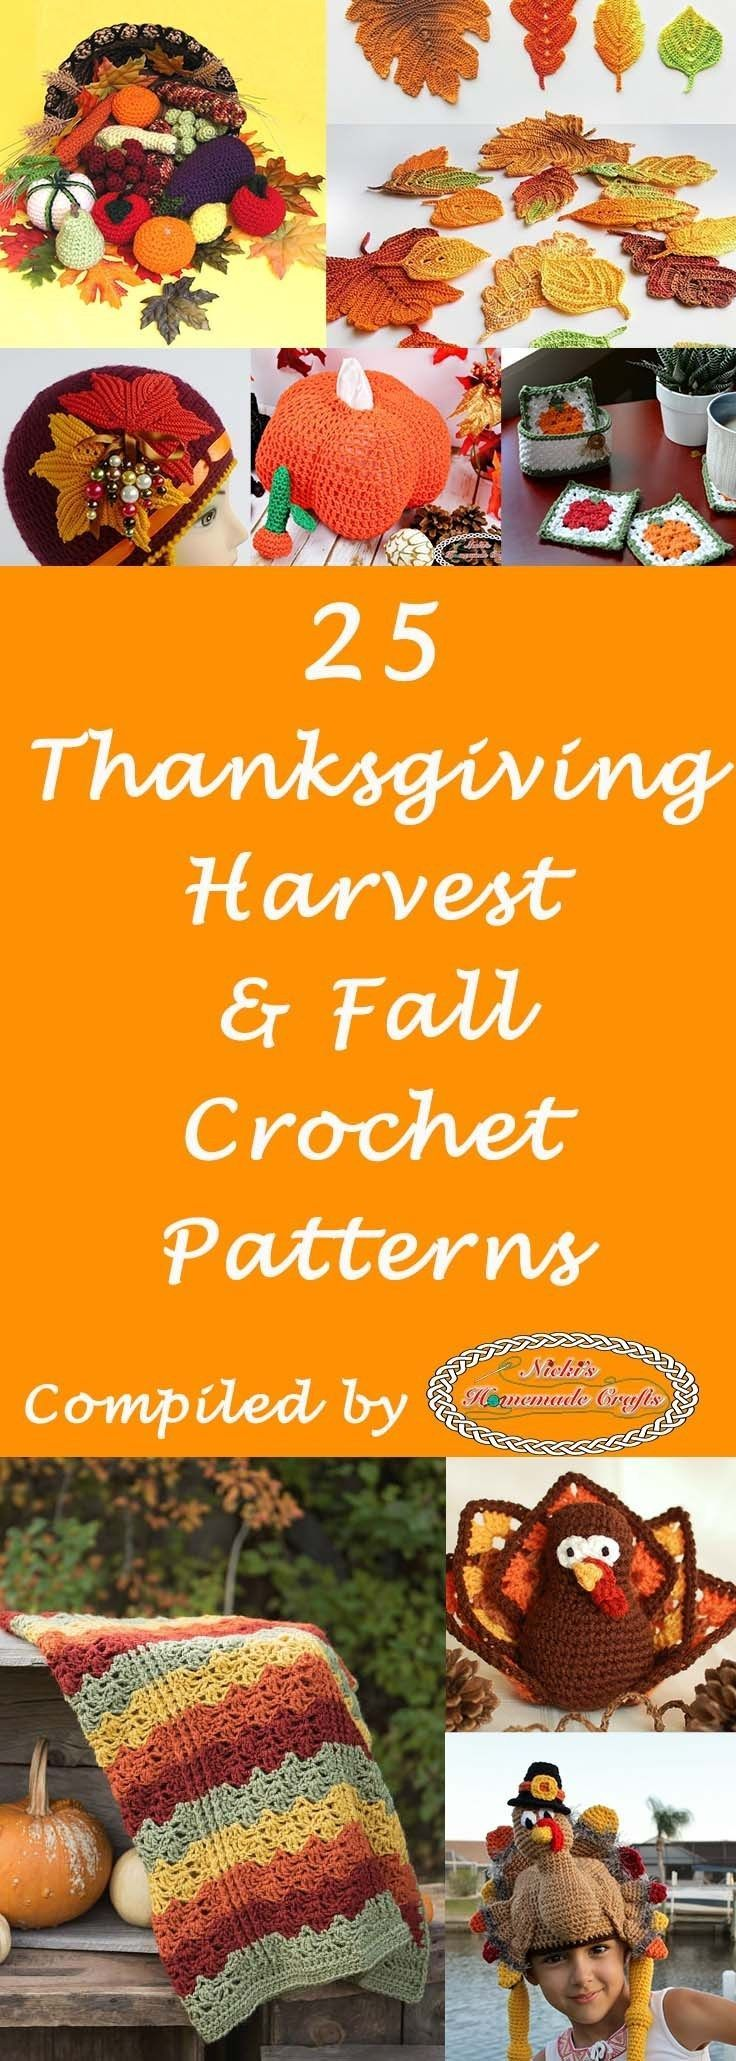 Thanksgiving Harvest and Fall Crochet Pattern Roundup Thanksgiving Harvest and Fall Crochet Pattern Roundup